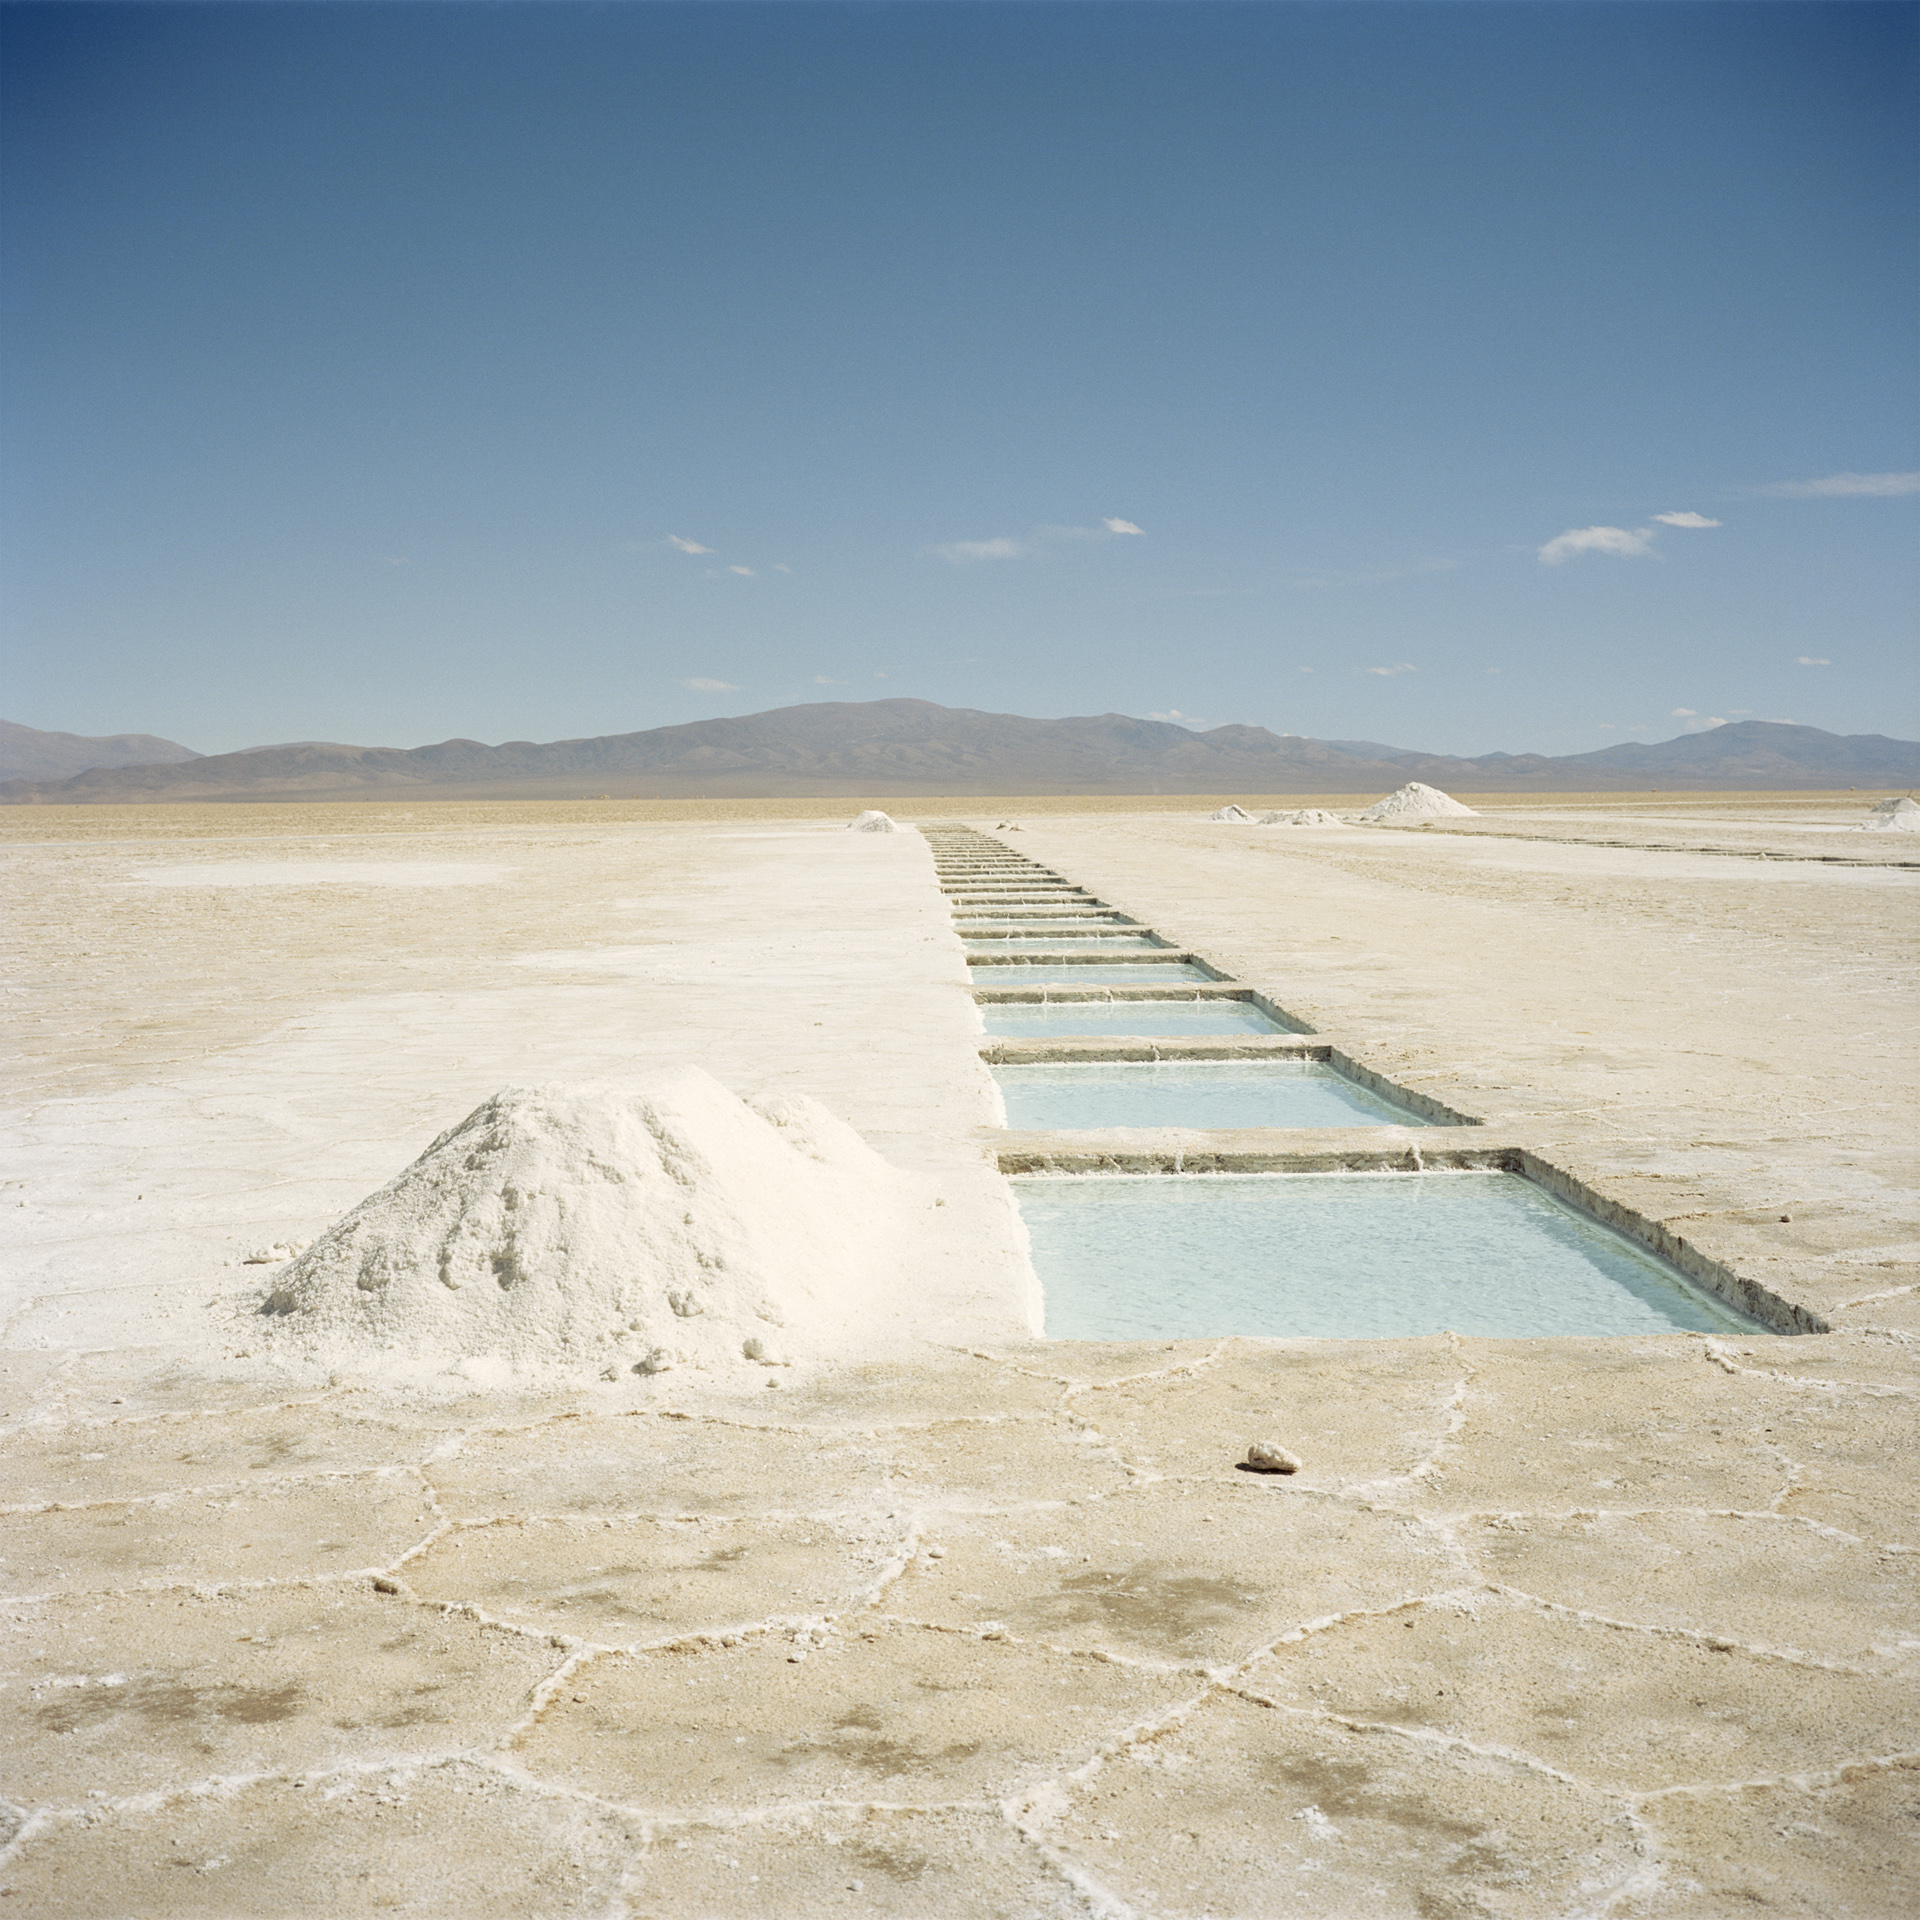 Jujuy Province. Salinas Grande is the biggest salt flat in Argentina, 60 kms in length and covering an area roughly 5200km2, at an altitude of 3350 meters. Salt is harvested from square pools dug into the crystalline salt plain.